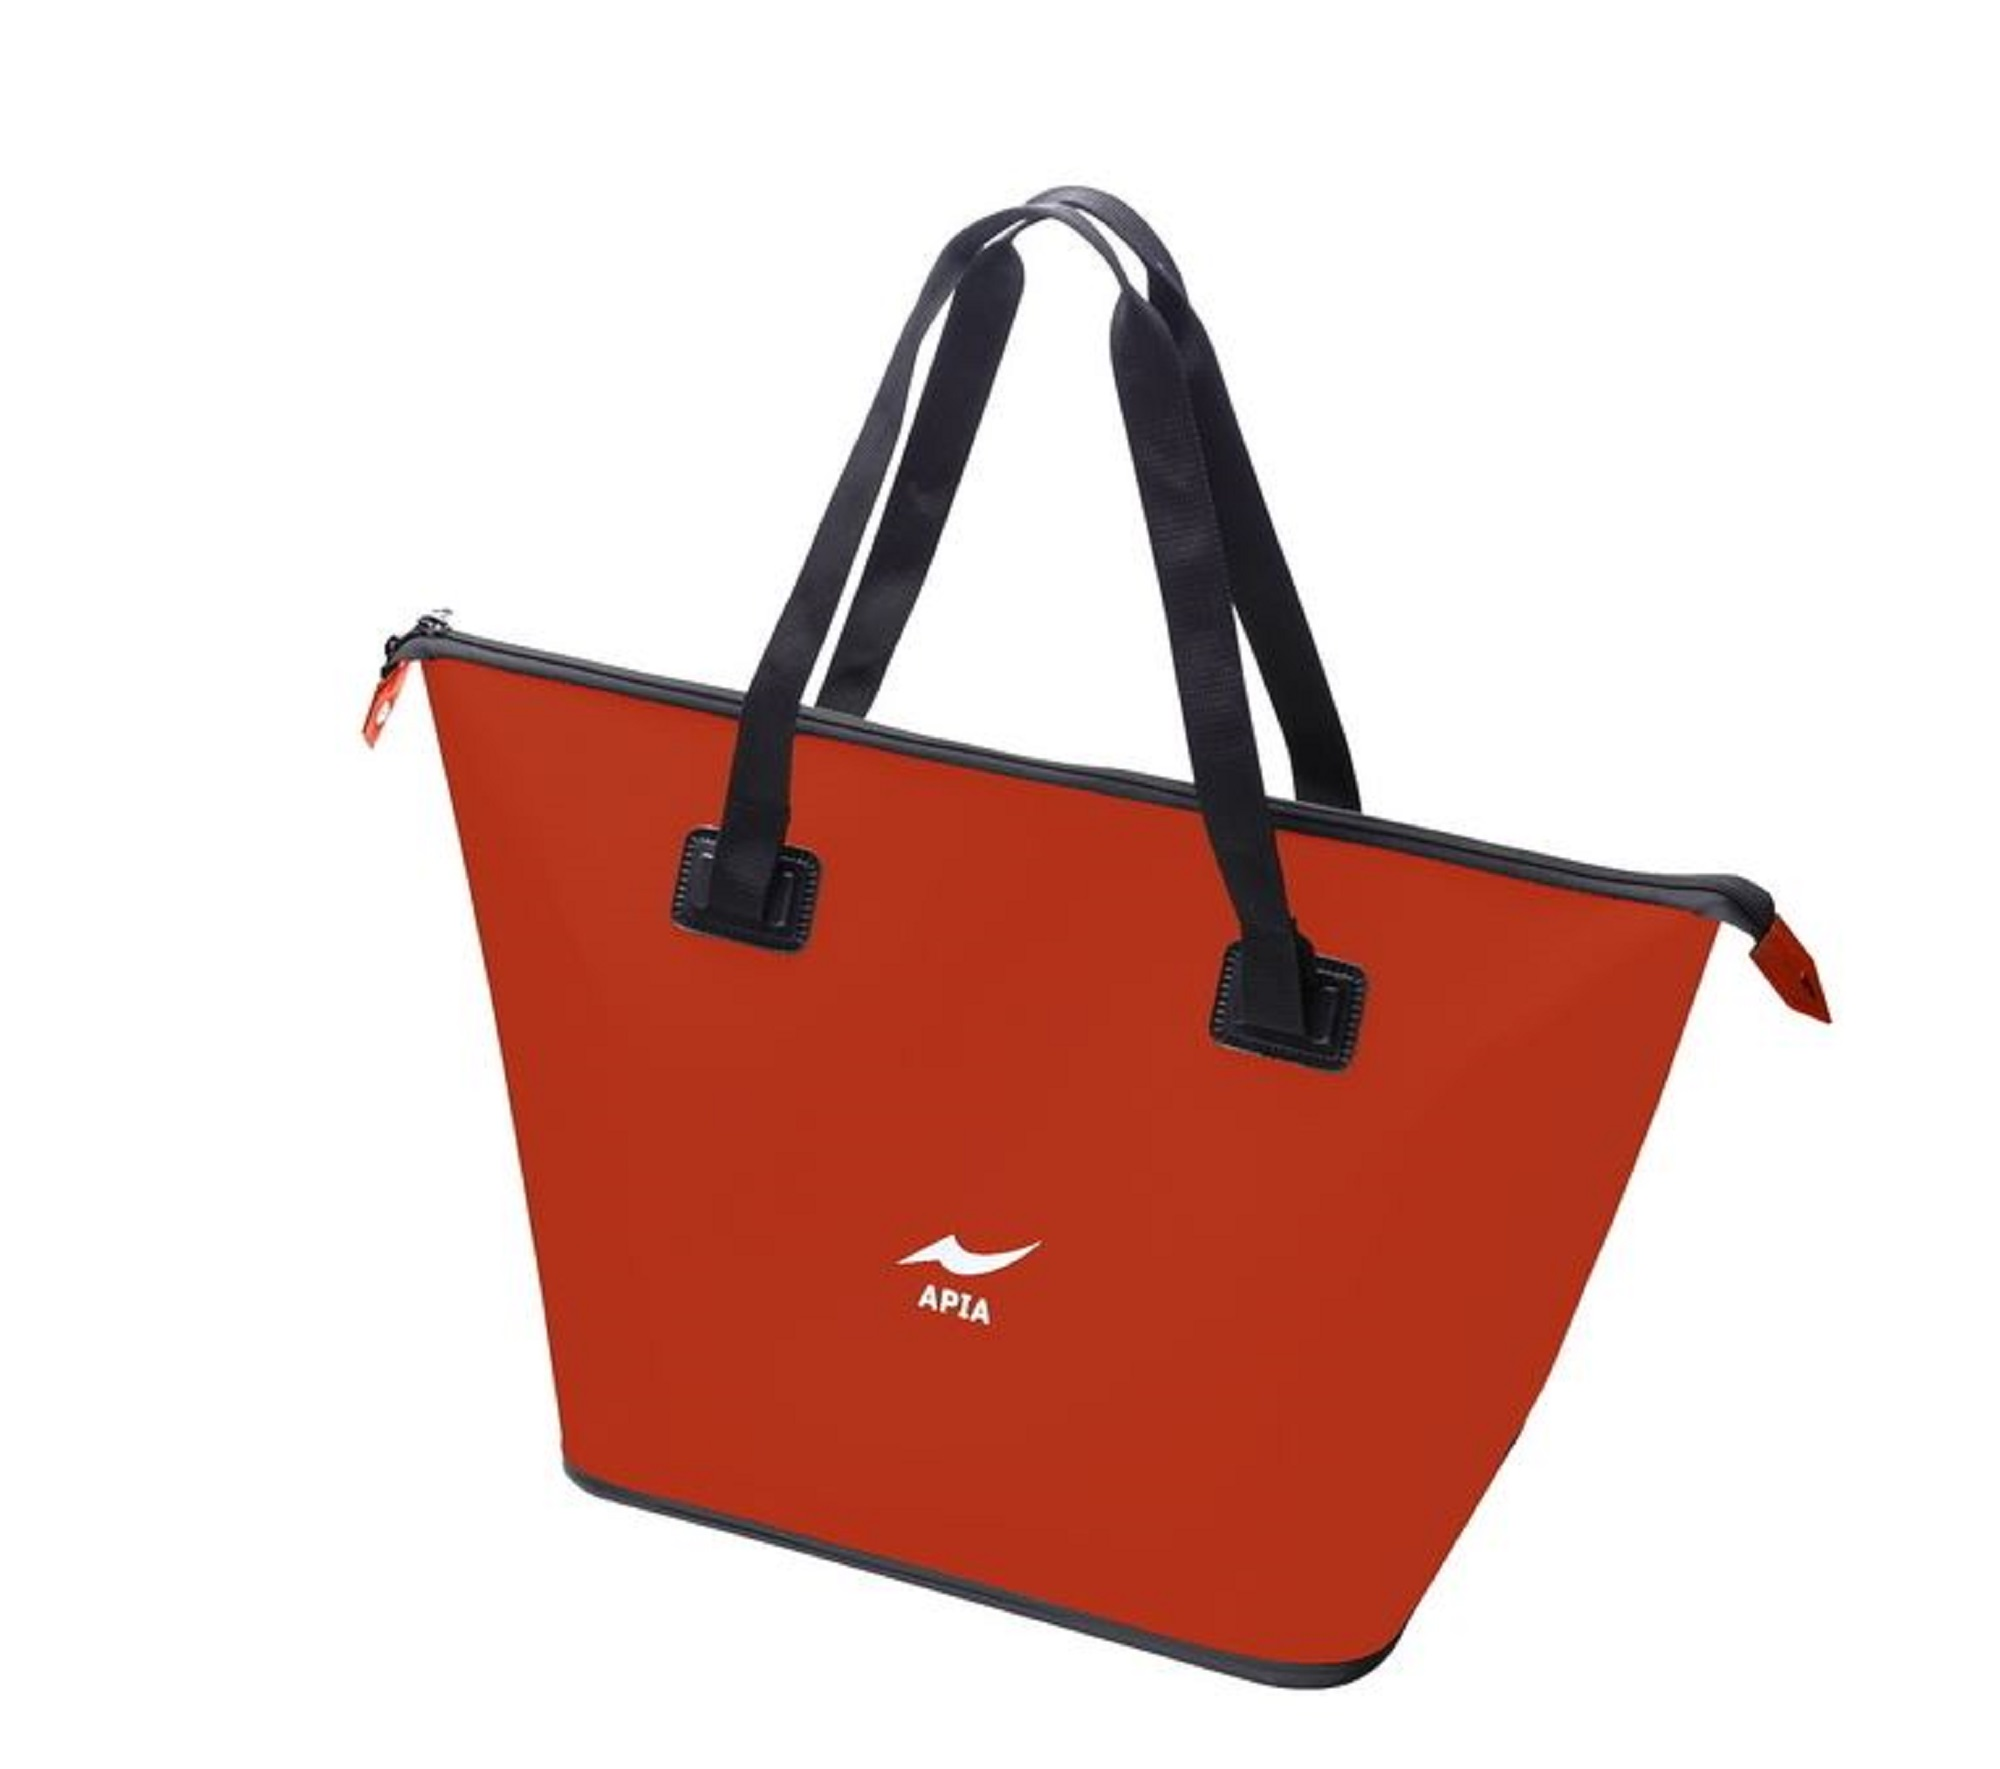 Apia EVA Tote Bag Black Size L 600 x 360 x 600 mm Red (6968)